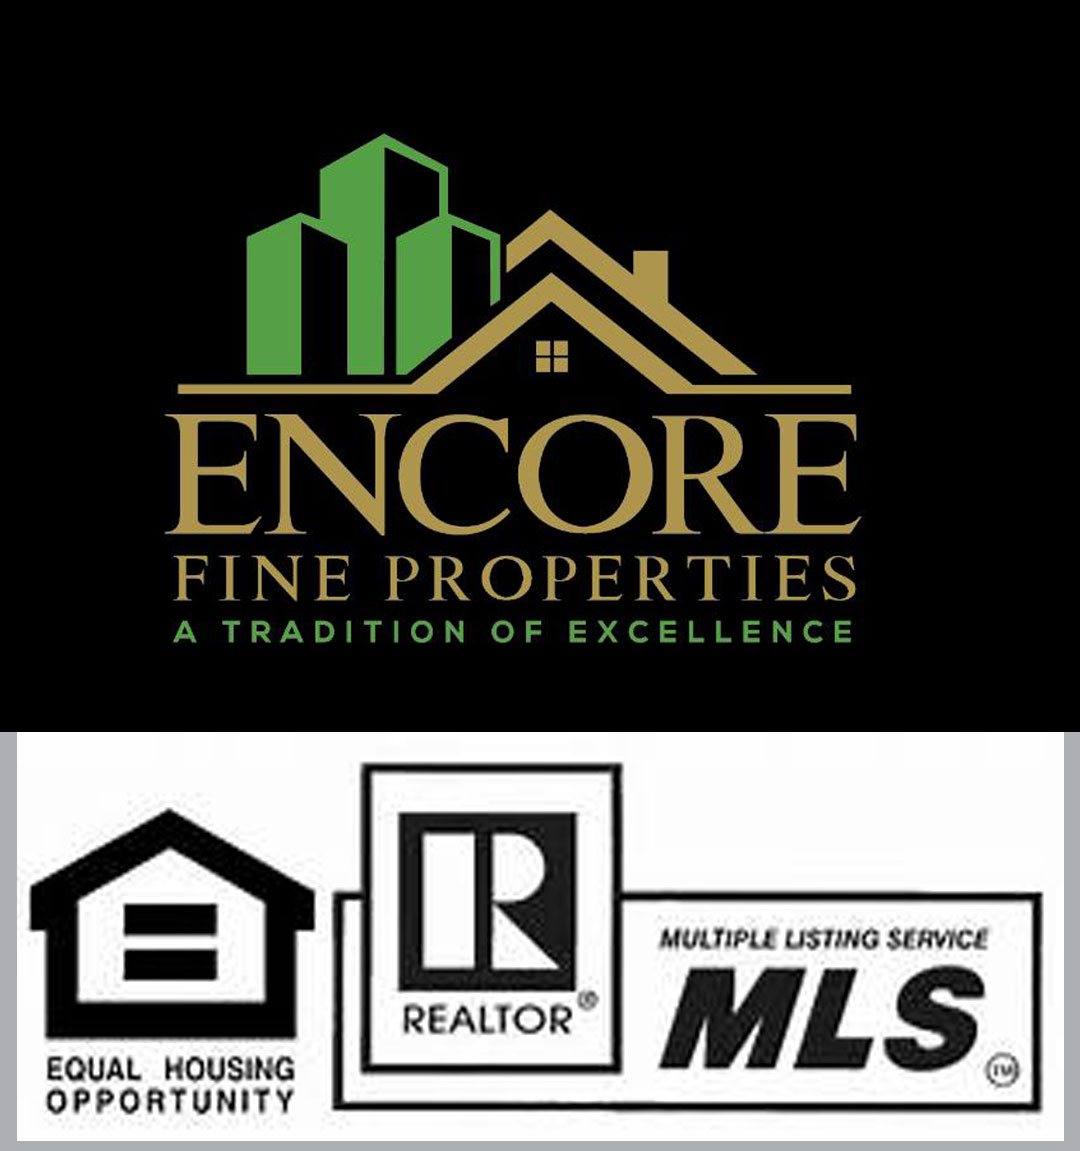 ENCORE LOGO CON EQUAL HOUSING